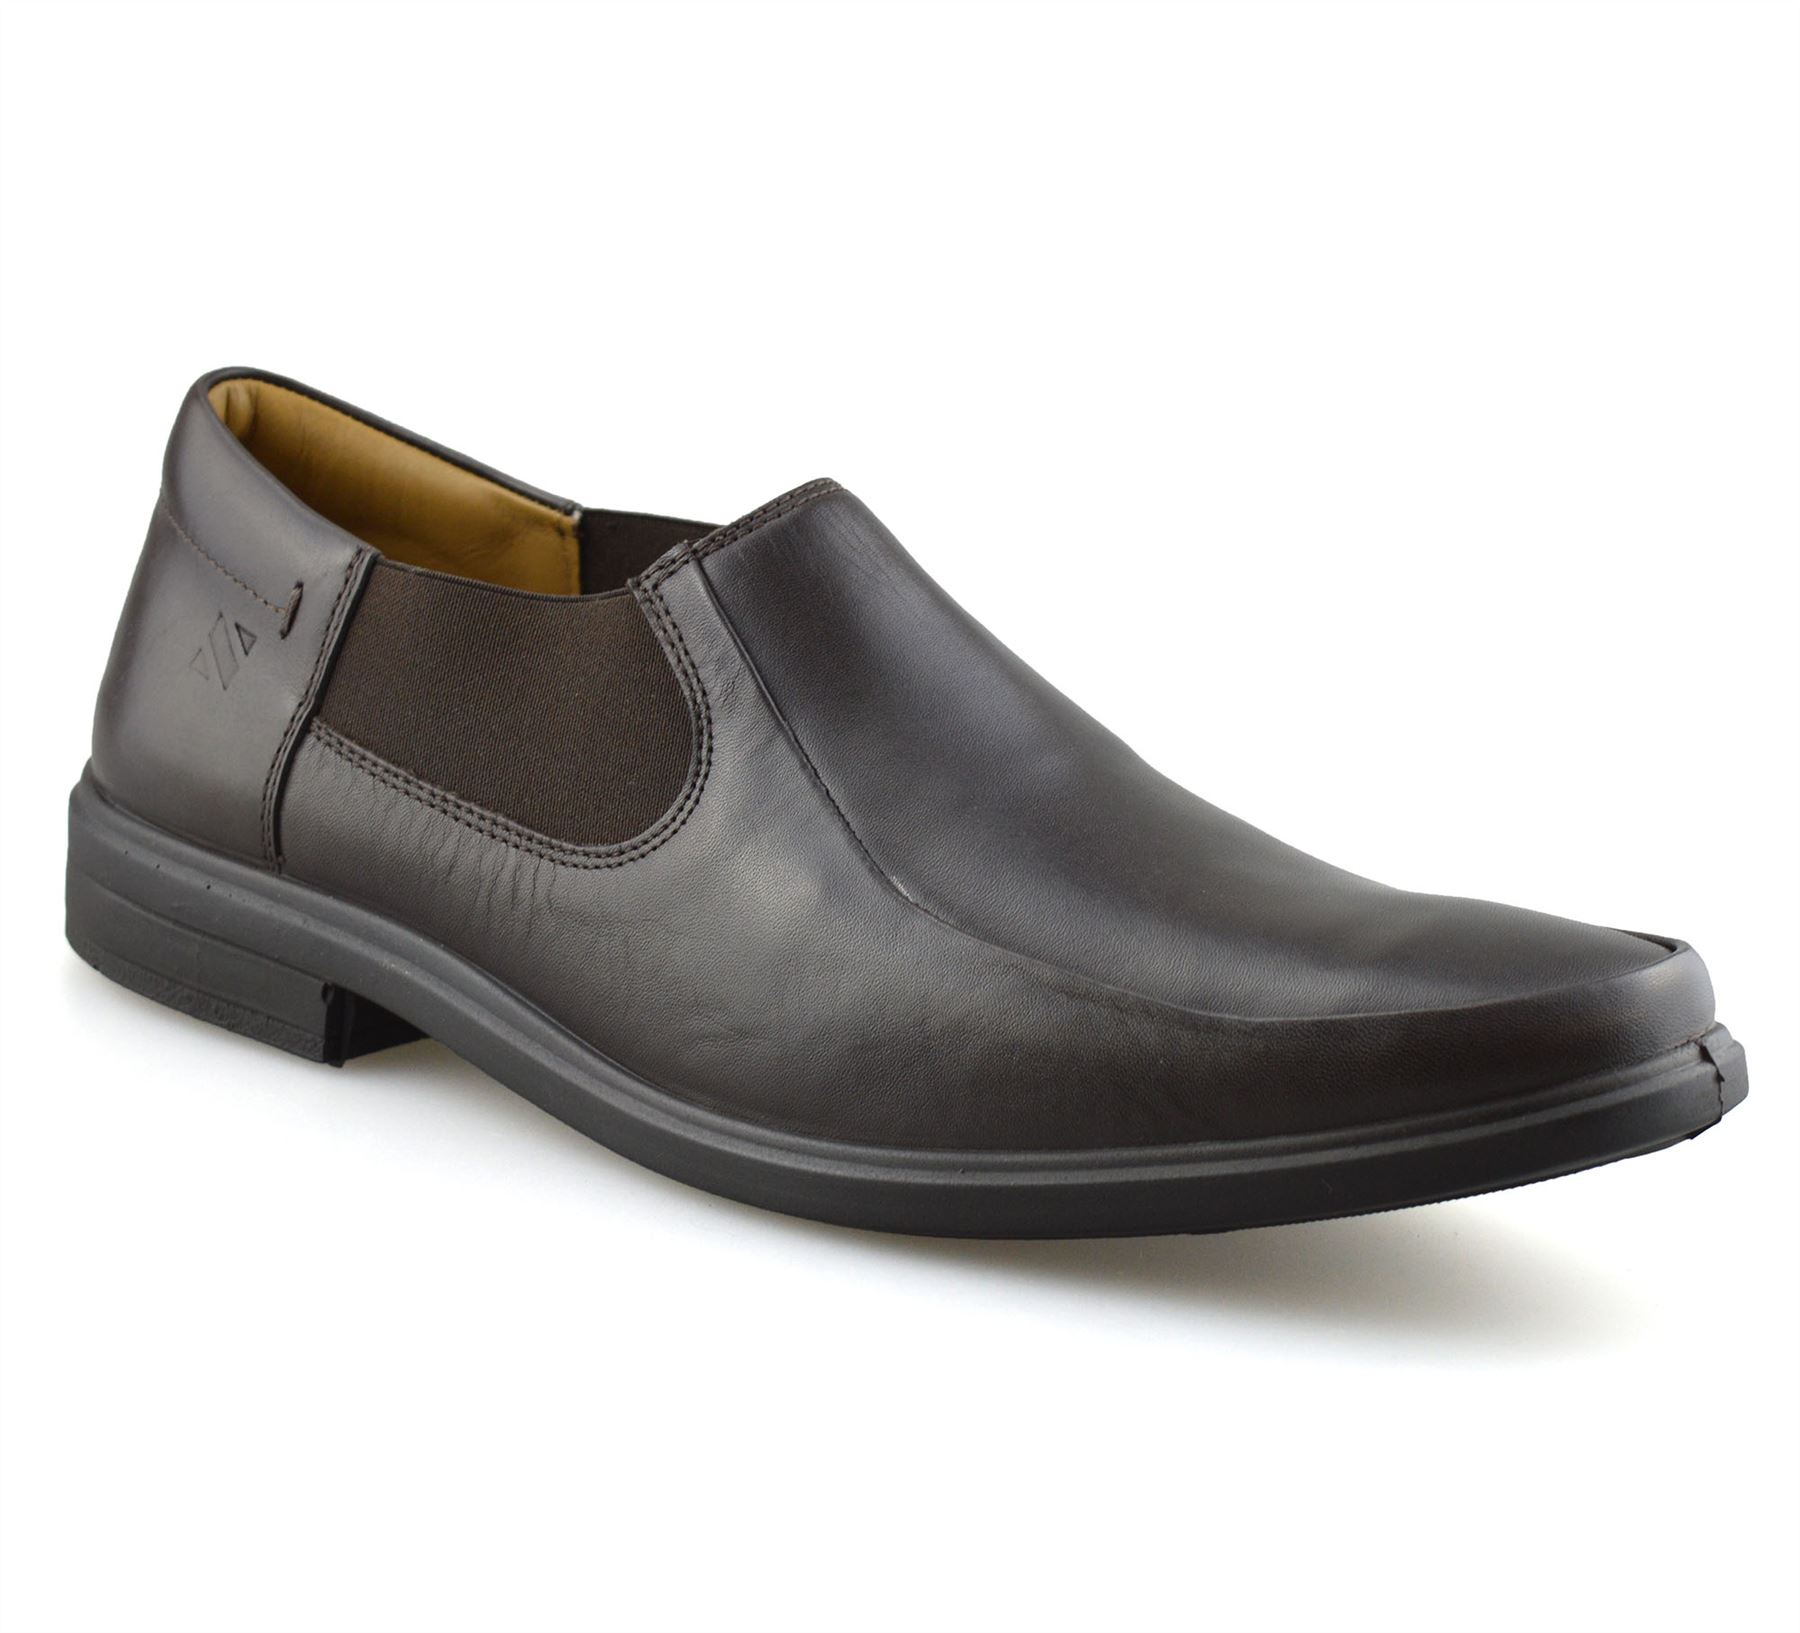 Mens-Leather-Slip-On-Casual-Smart-Designer-Mocassin-Work-Loafers-Shoes-Size thumbnail 8